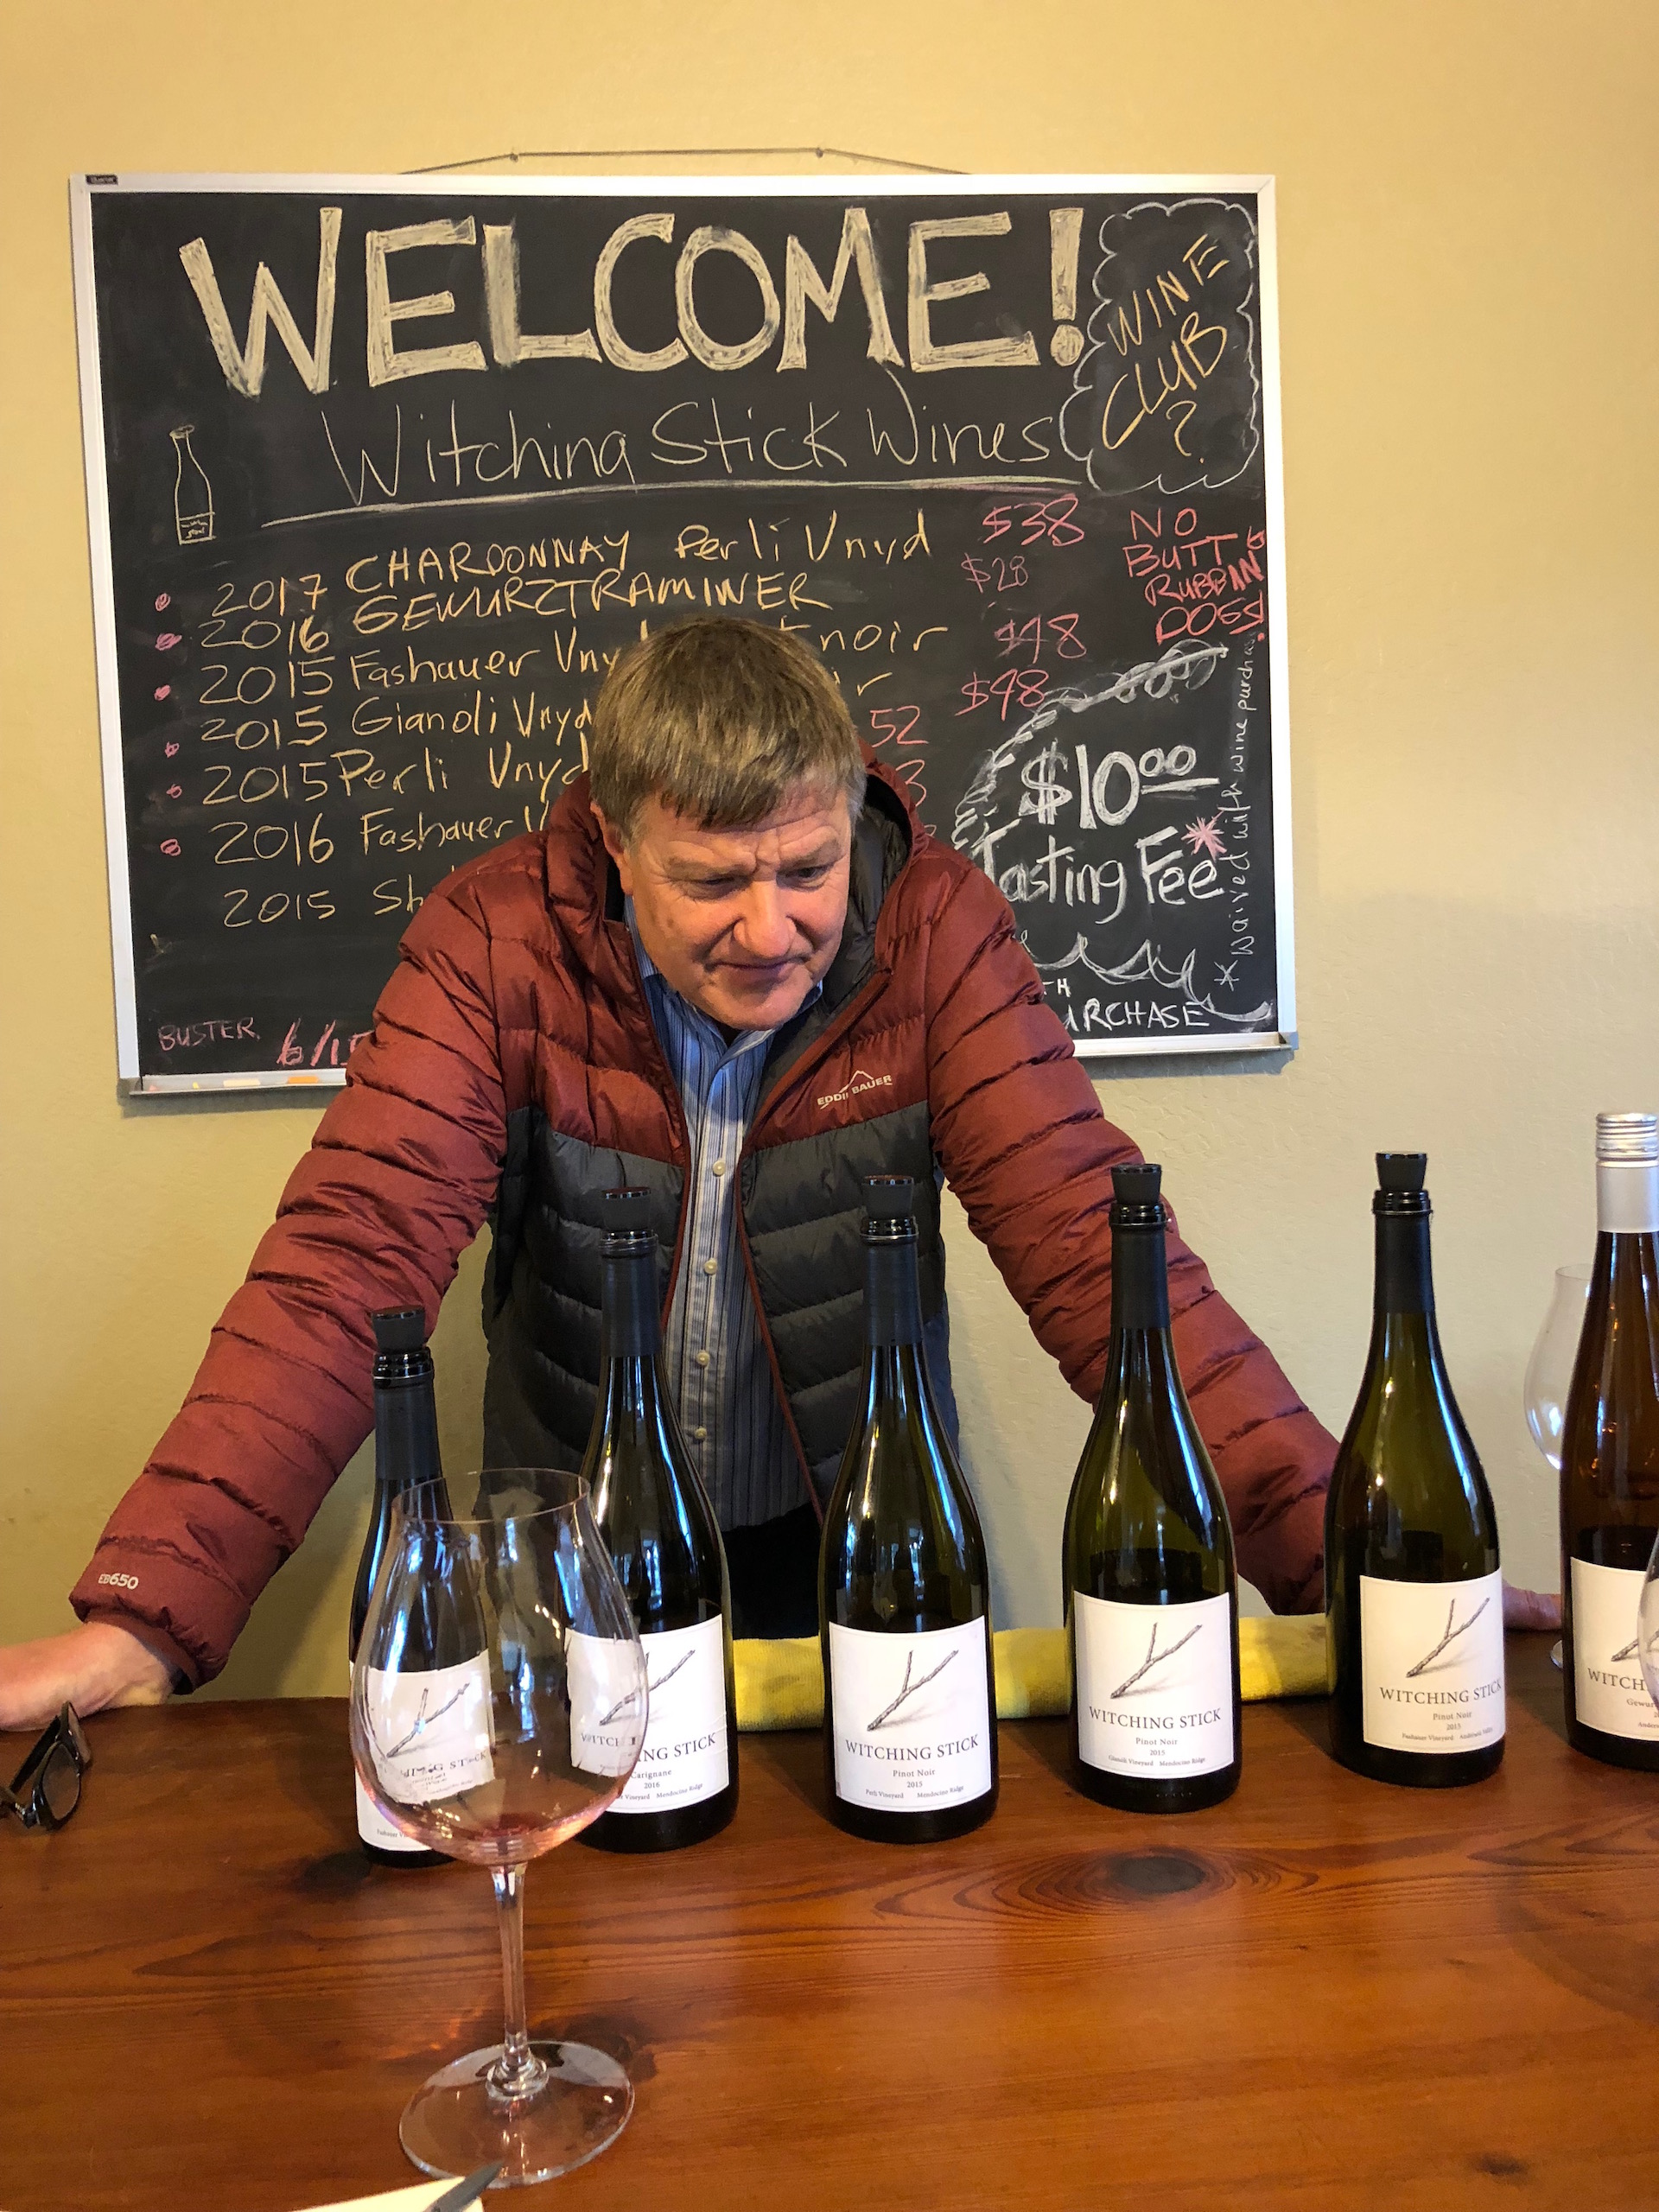 Witching Stick Winery owner Van Williamson presents his wines and offers decades of wine industry knowledge